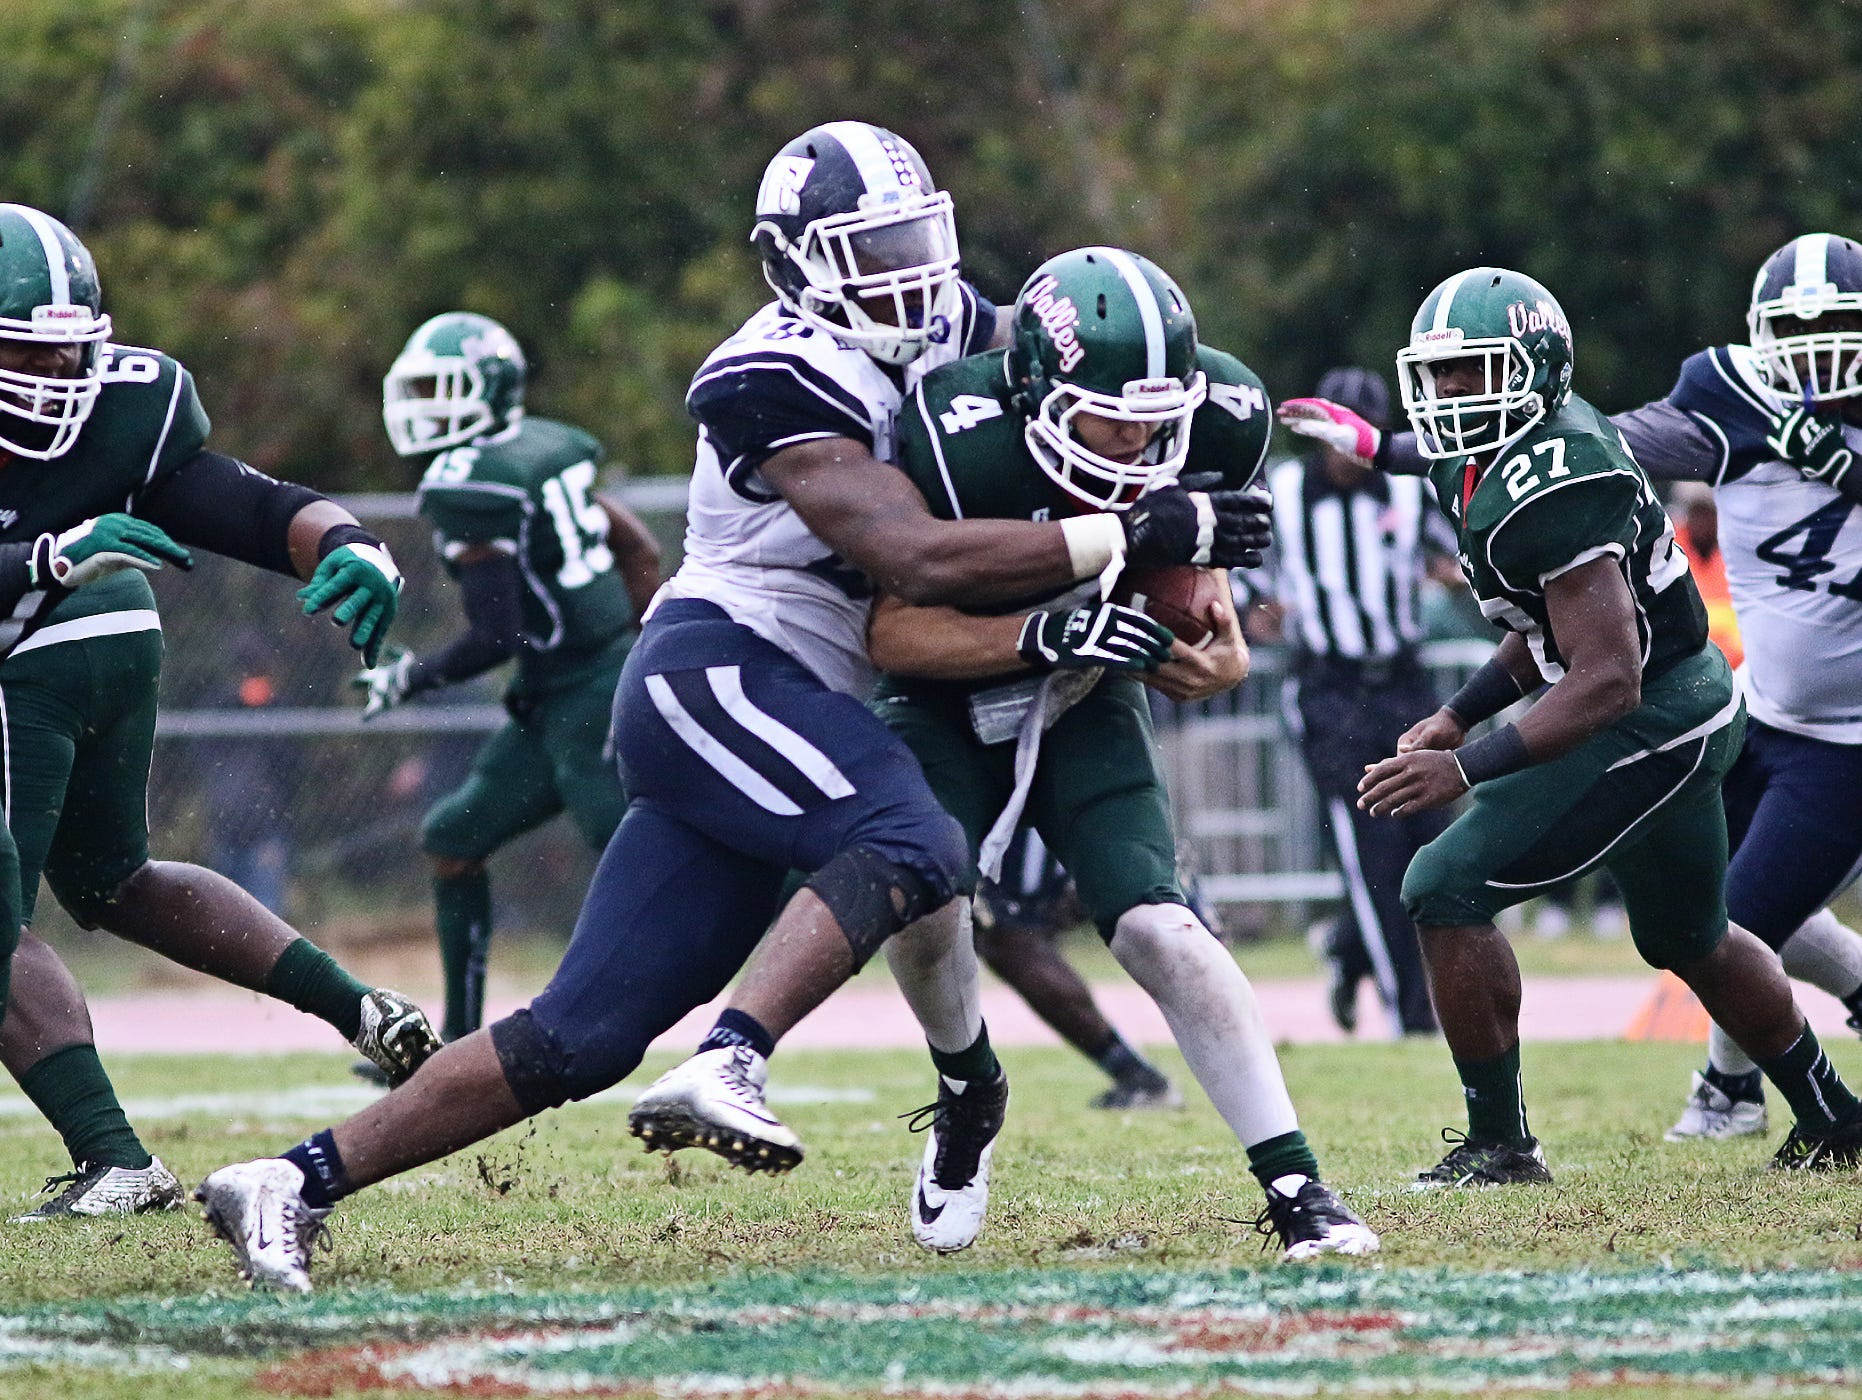 Defensive end Javancy Jones, here making a tackle, has been one of the reasons for JSU's improved defensive play recently.